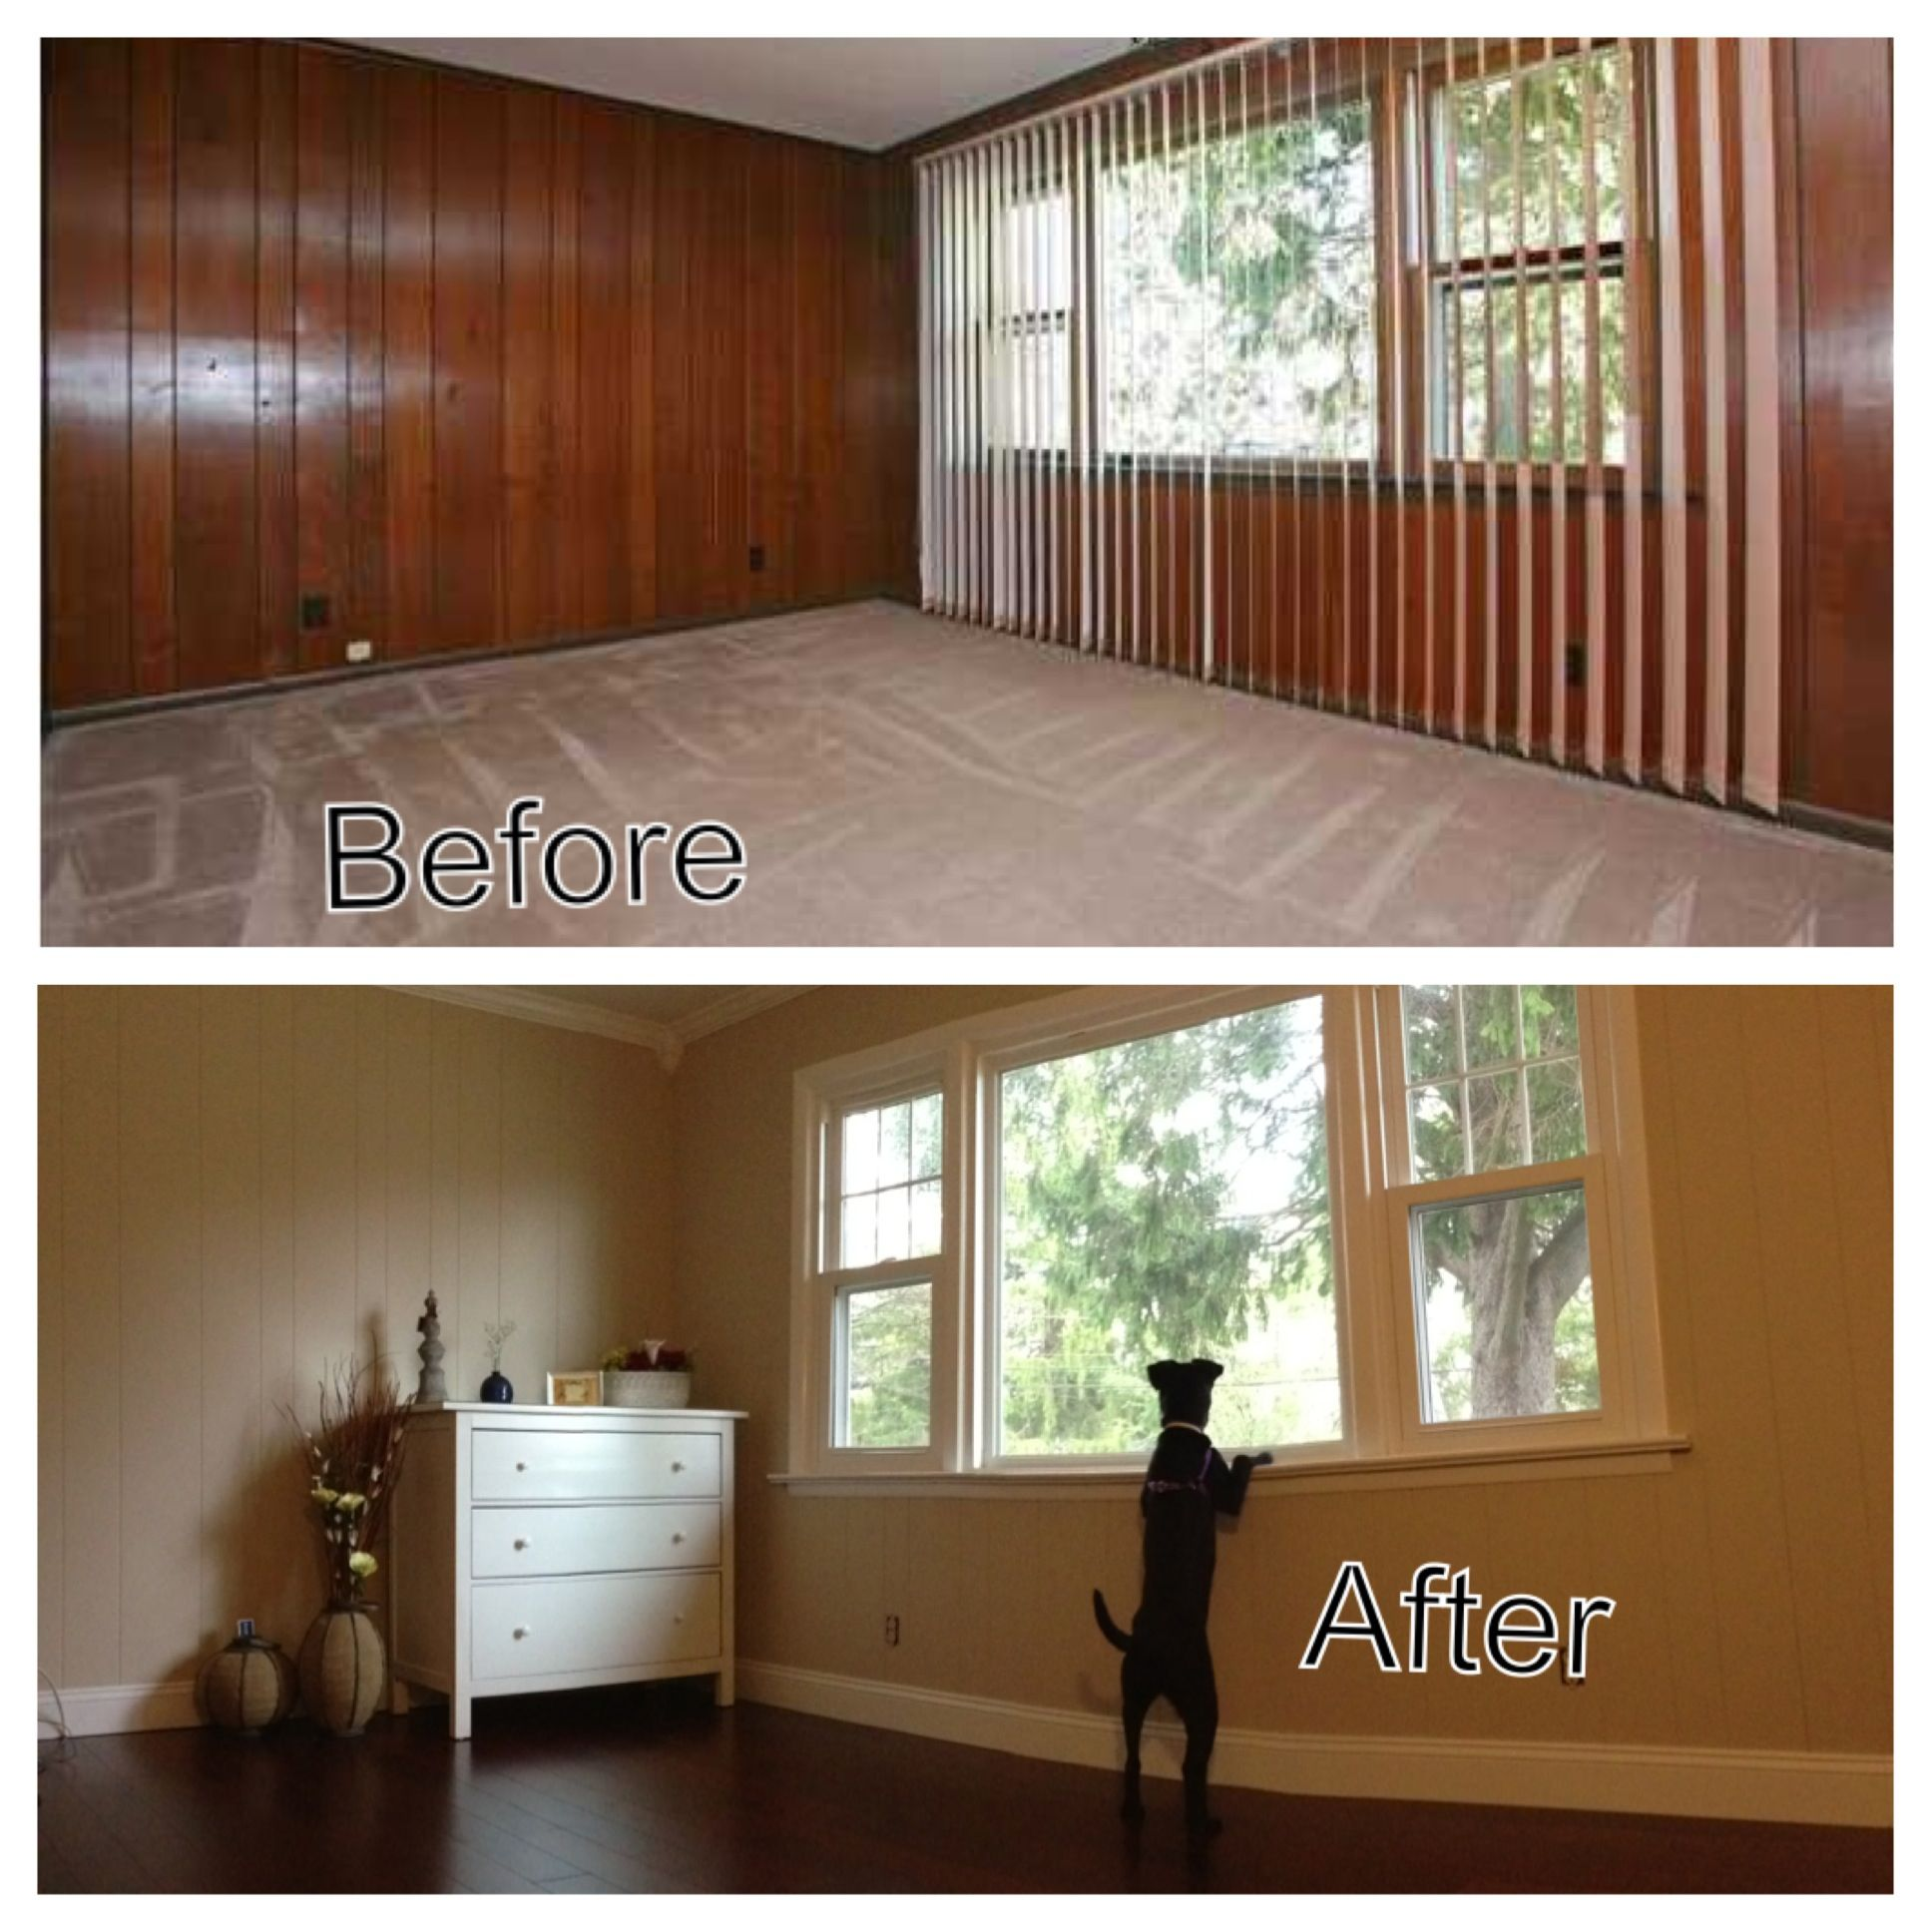 Before after diy home renovation take out those ugly Paneling makeover ideas